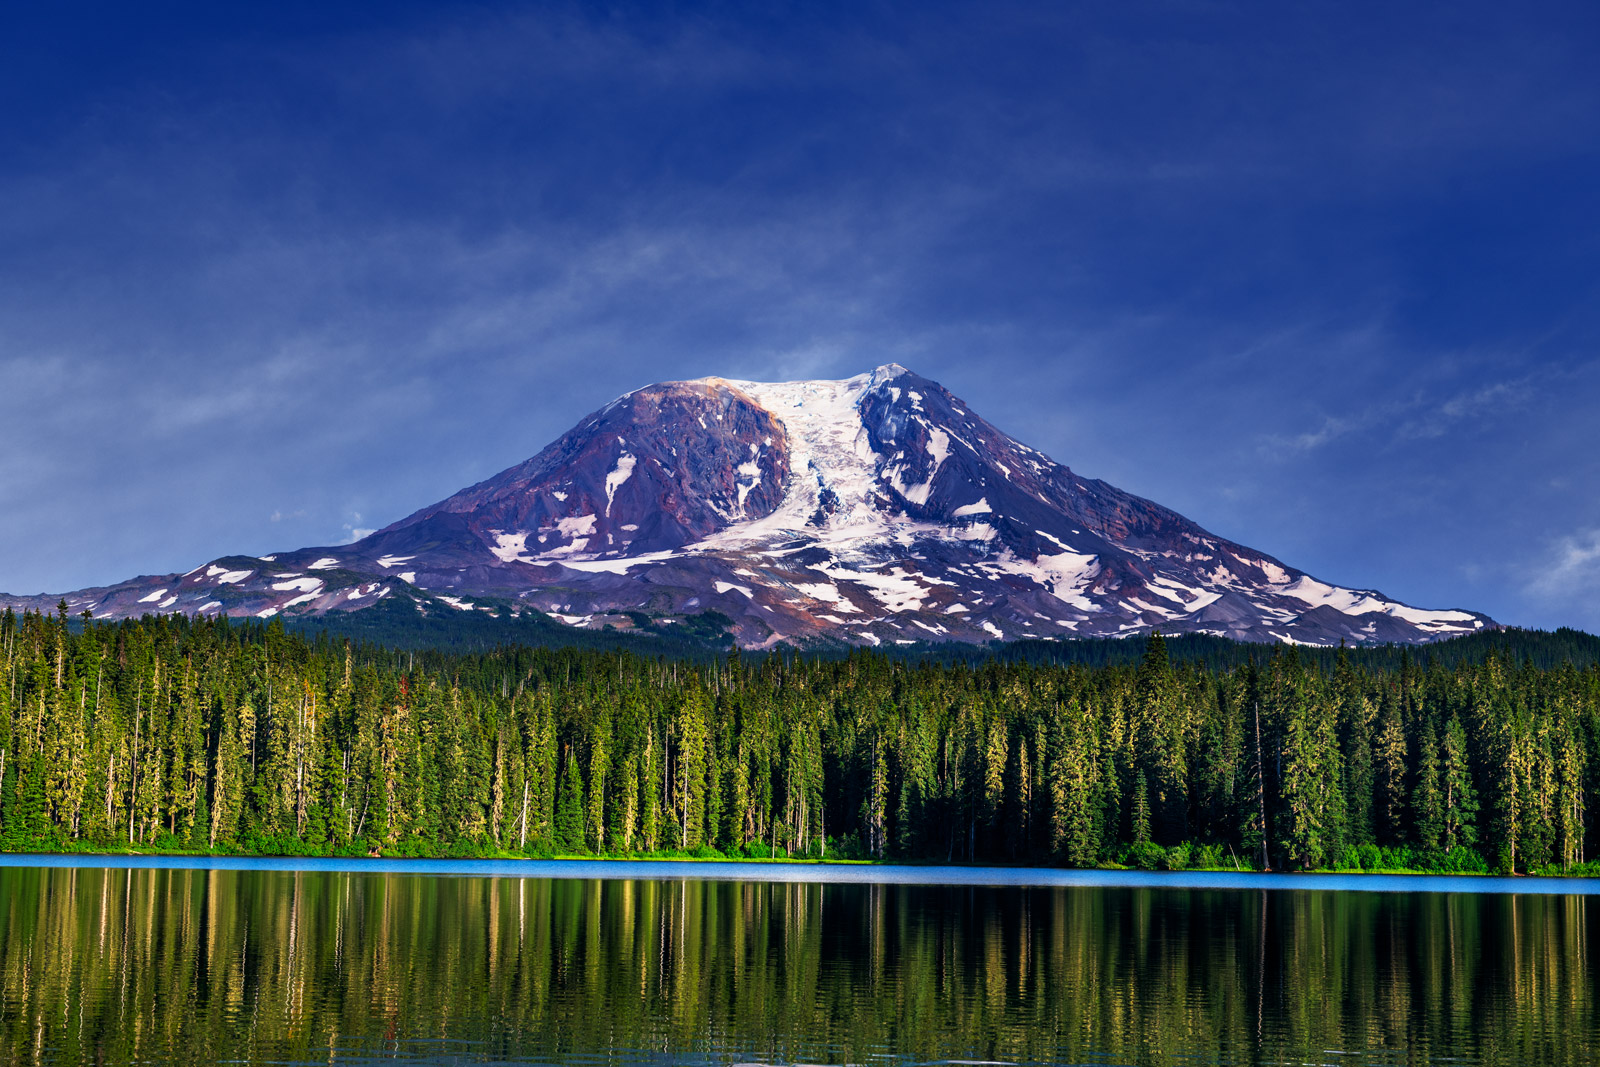 A Limited Edition, Fine Art photograph of Mountain Adams rising above Takhlakh Lake in Washington. Available as a Fine Art print...